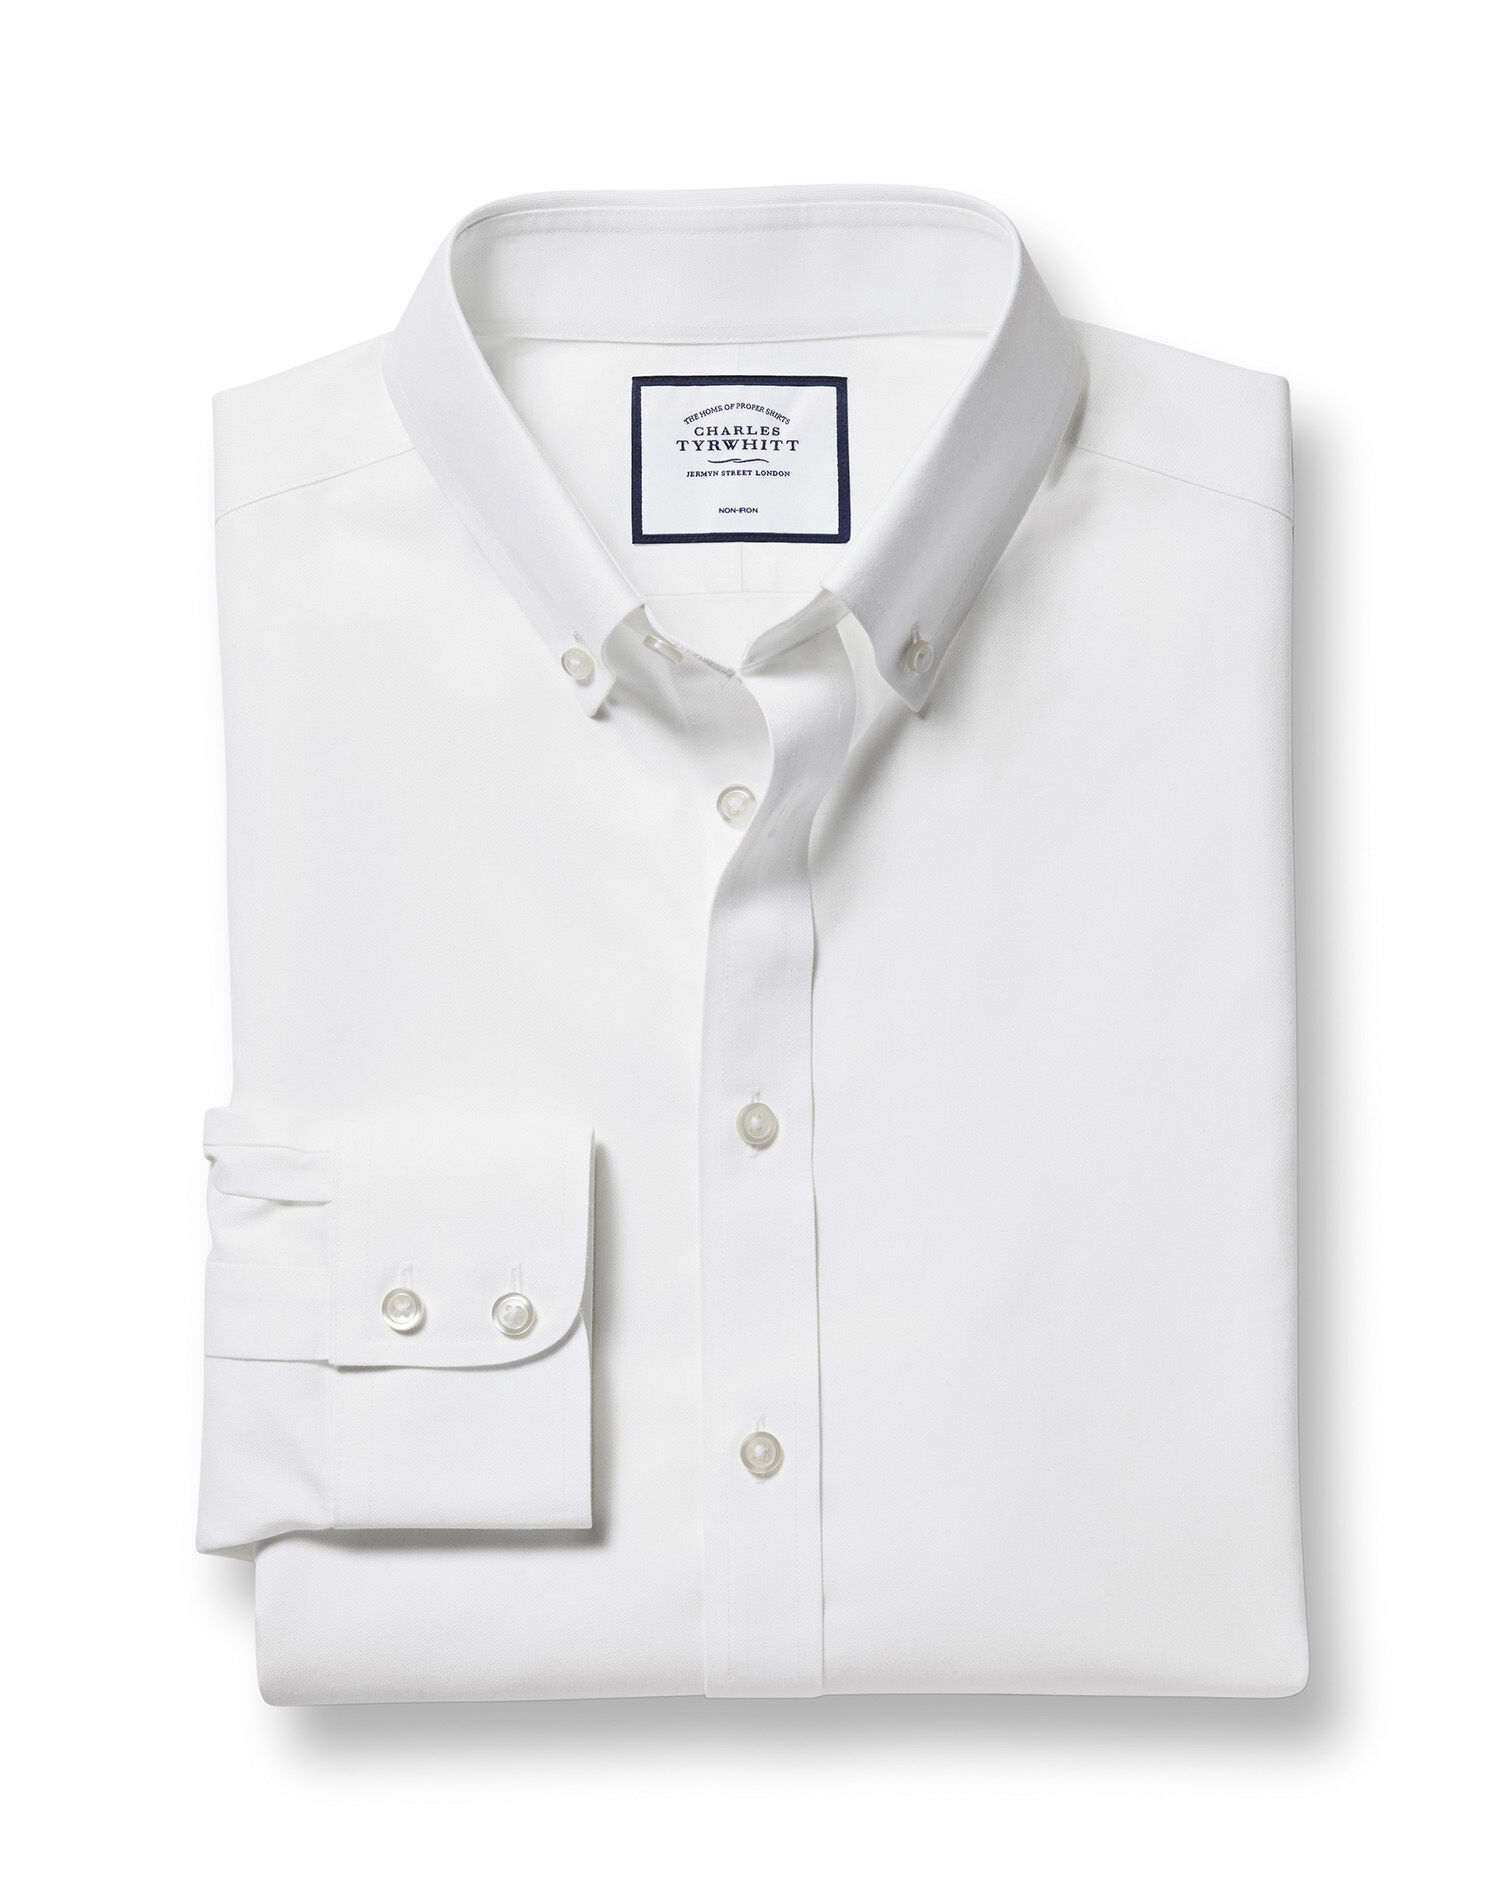 Slim Fit Button-Down Non-Iron Twill White Cotton Formal Shirt Single Cuff Size 17/36 by Charles Tyrw